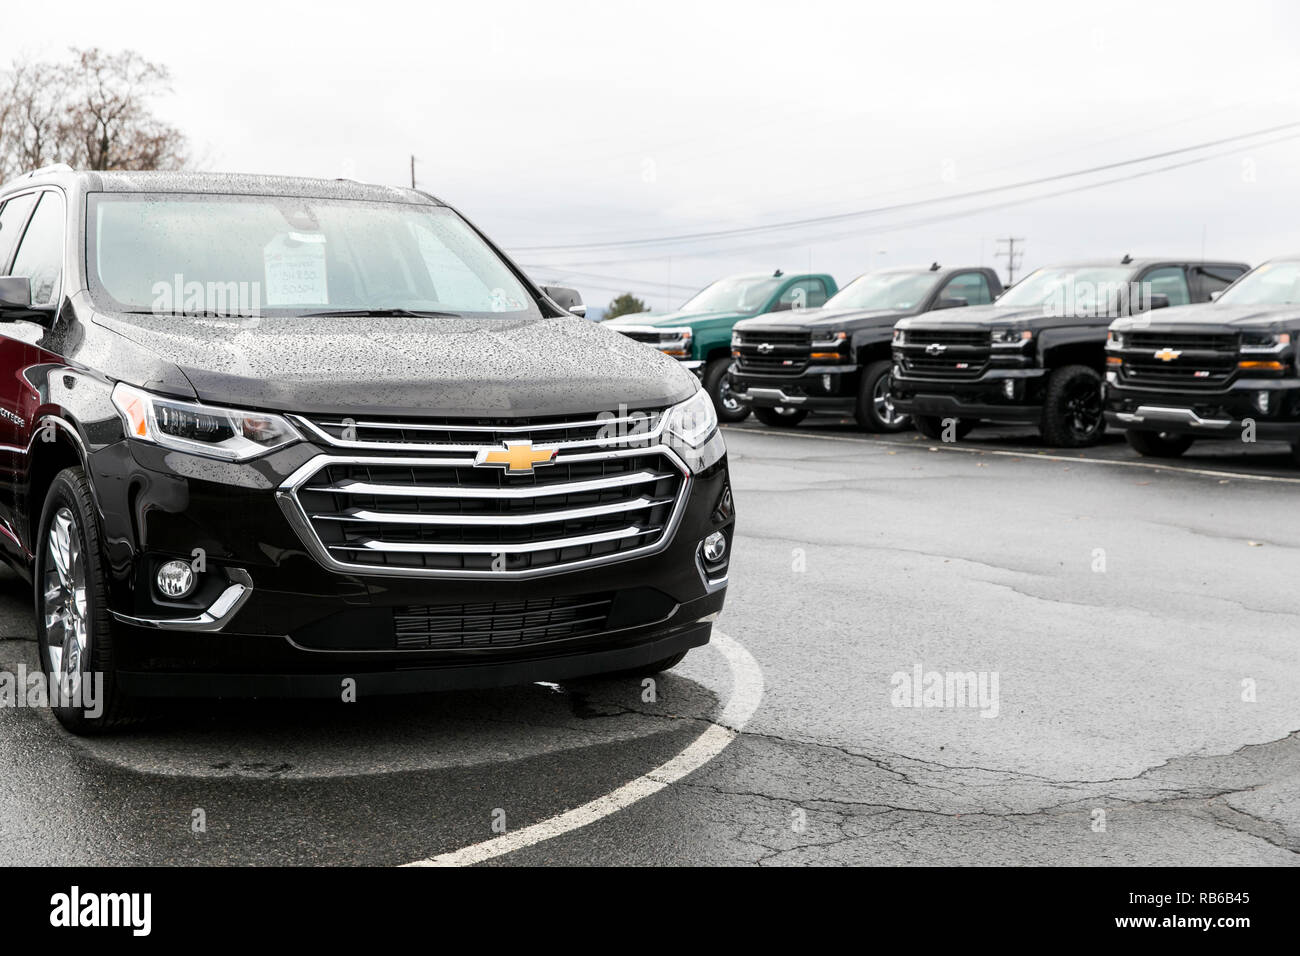 New Chevrolet (Chevy) Sport Utility Vehicles (SUV) and pick-up trucks on a dealer lot in Wilkes-Barre, Pennsylvania, on December 30, 2018. - Stock Image